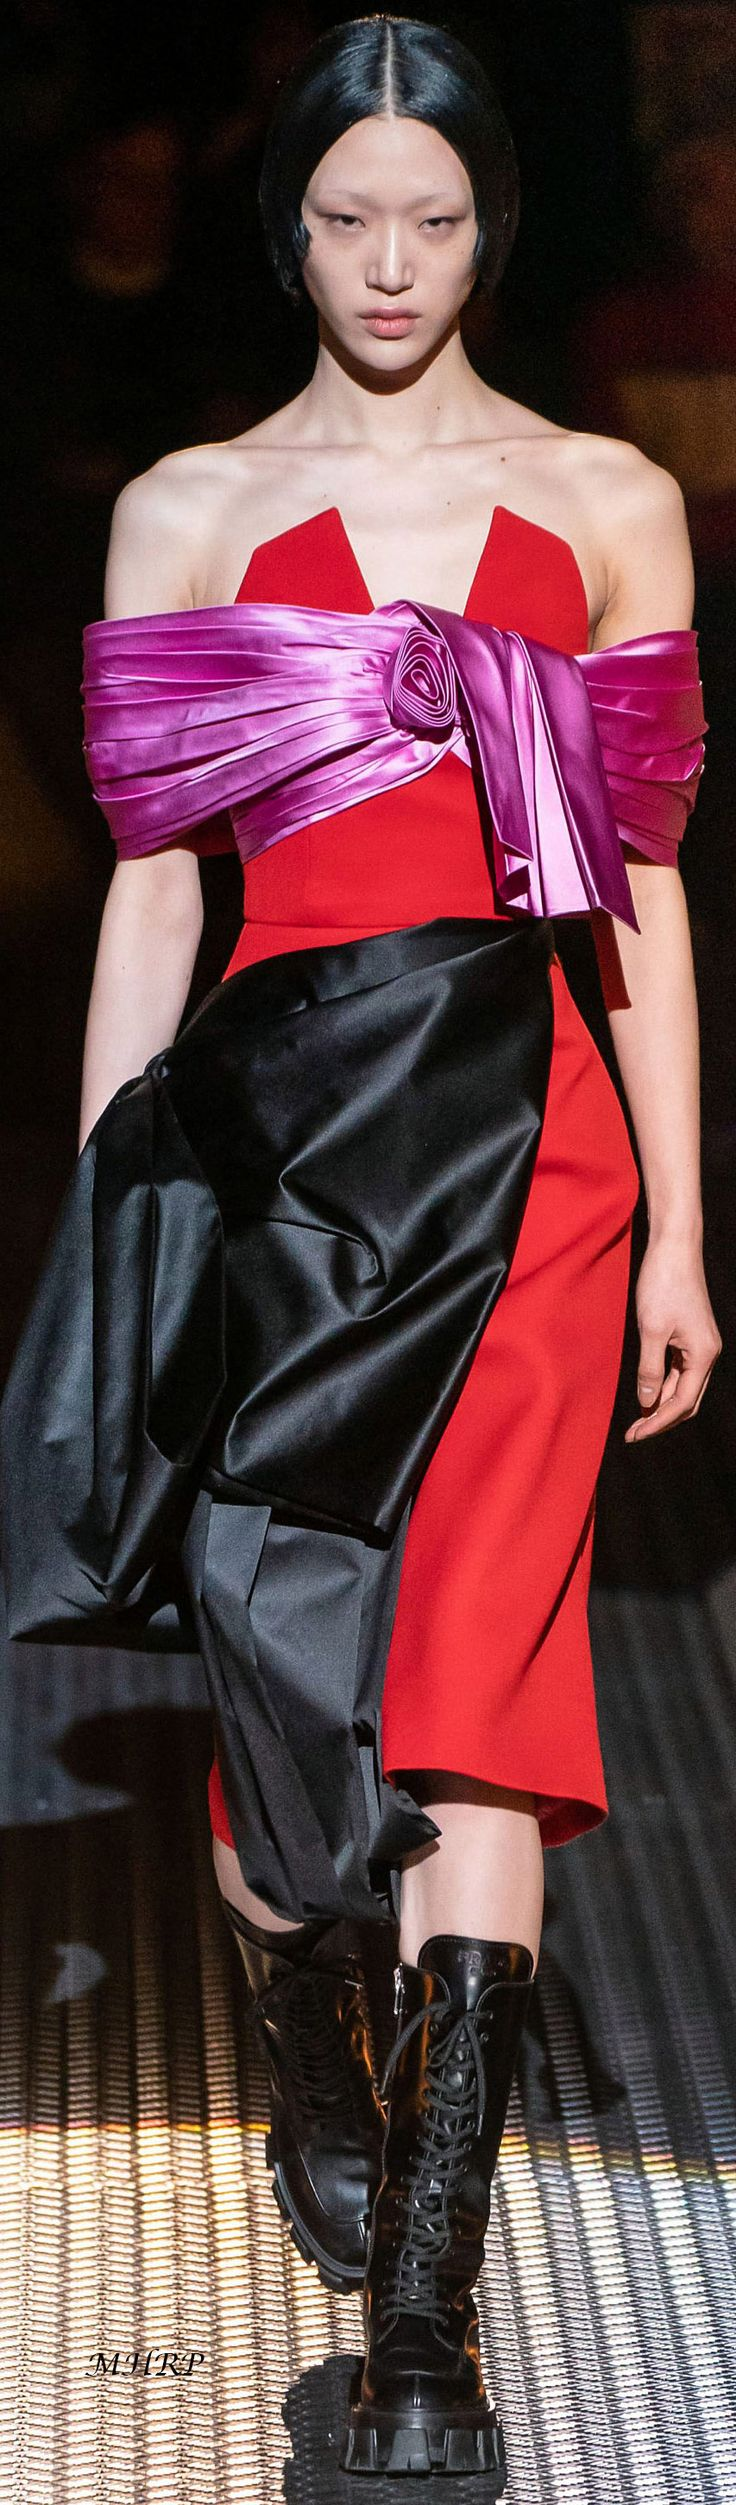 Prada Fall 2019_vogue.ru